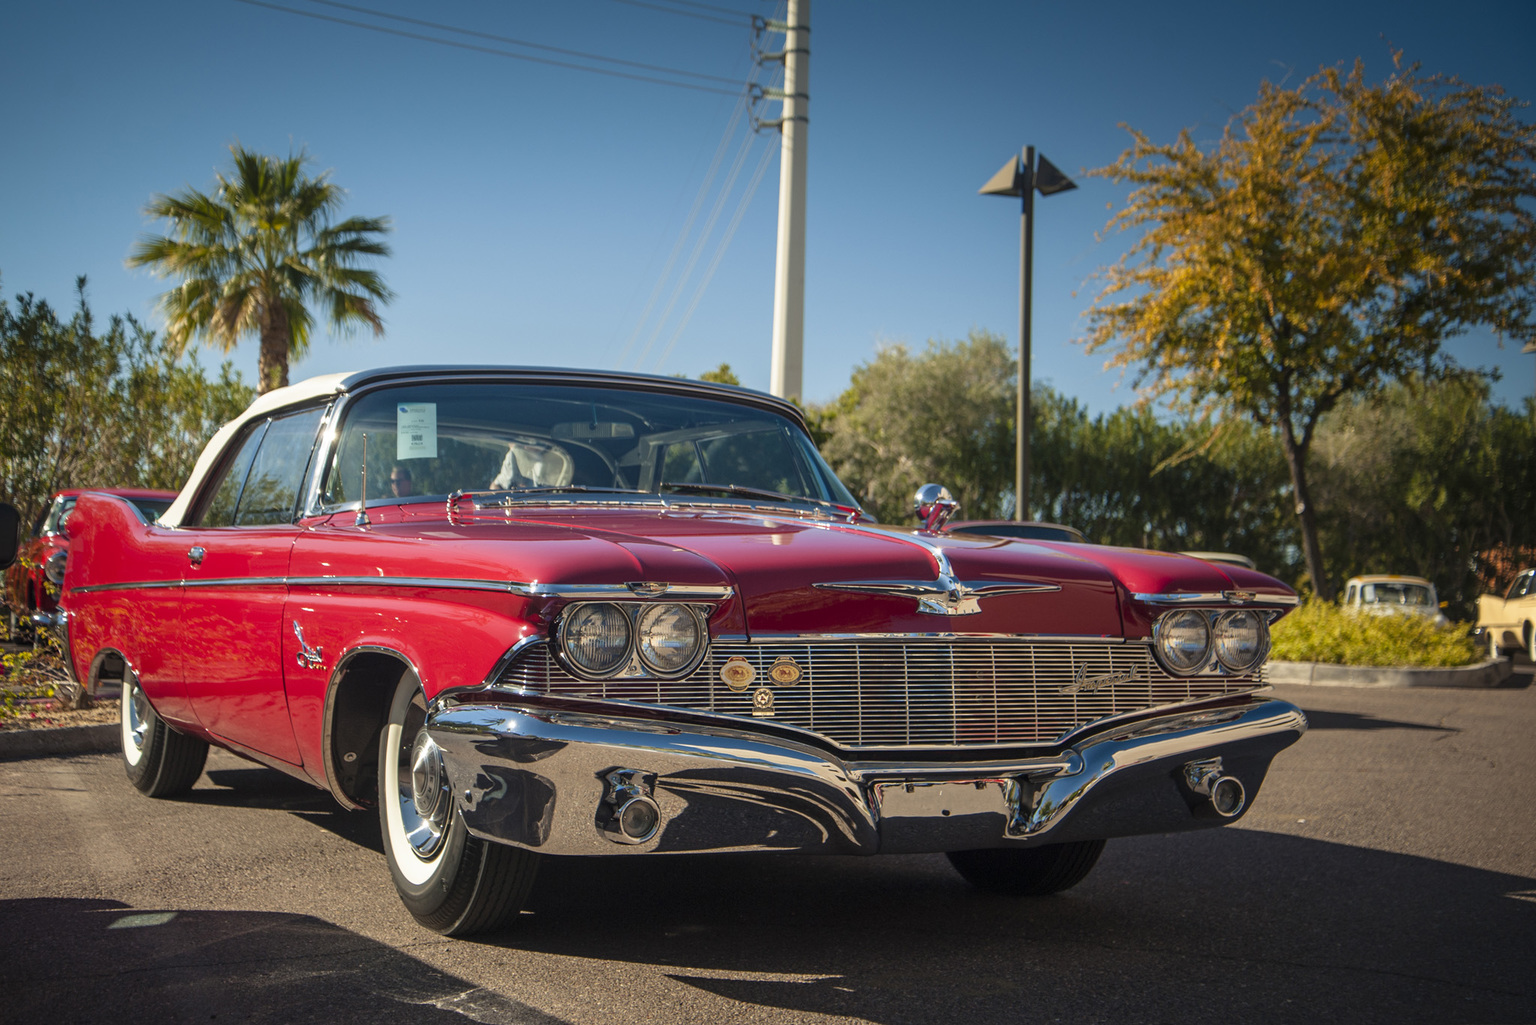 1960 Imperial Crown Convertible Coupe1960 Imperial Crown Convertible Coupe